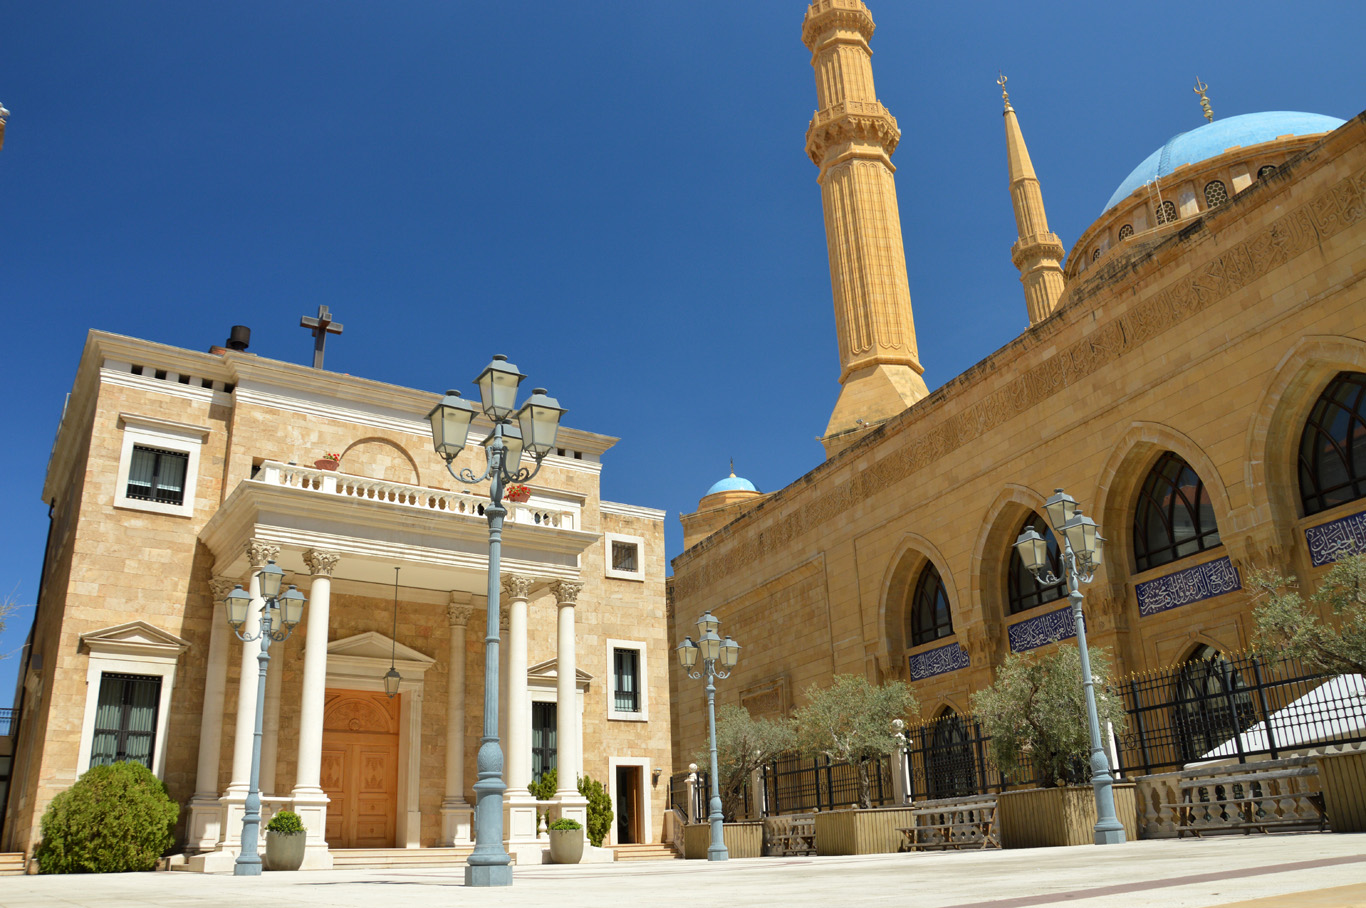 The chapel of St. George Maronite Cathedral right next to the mosque